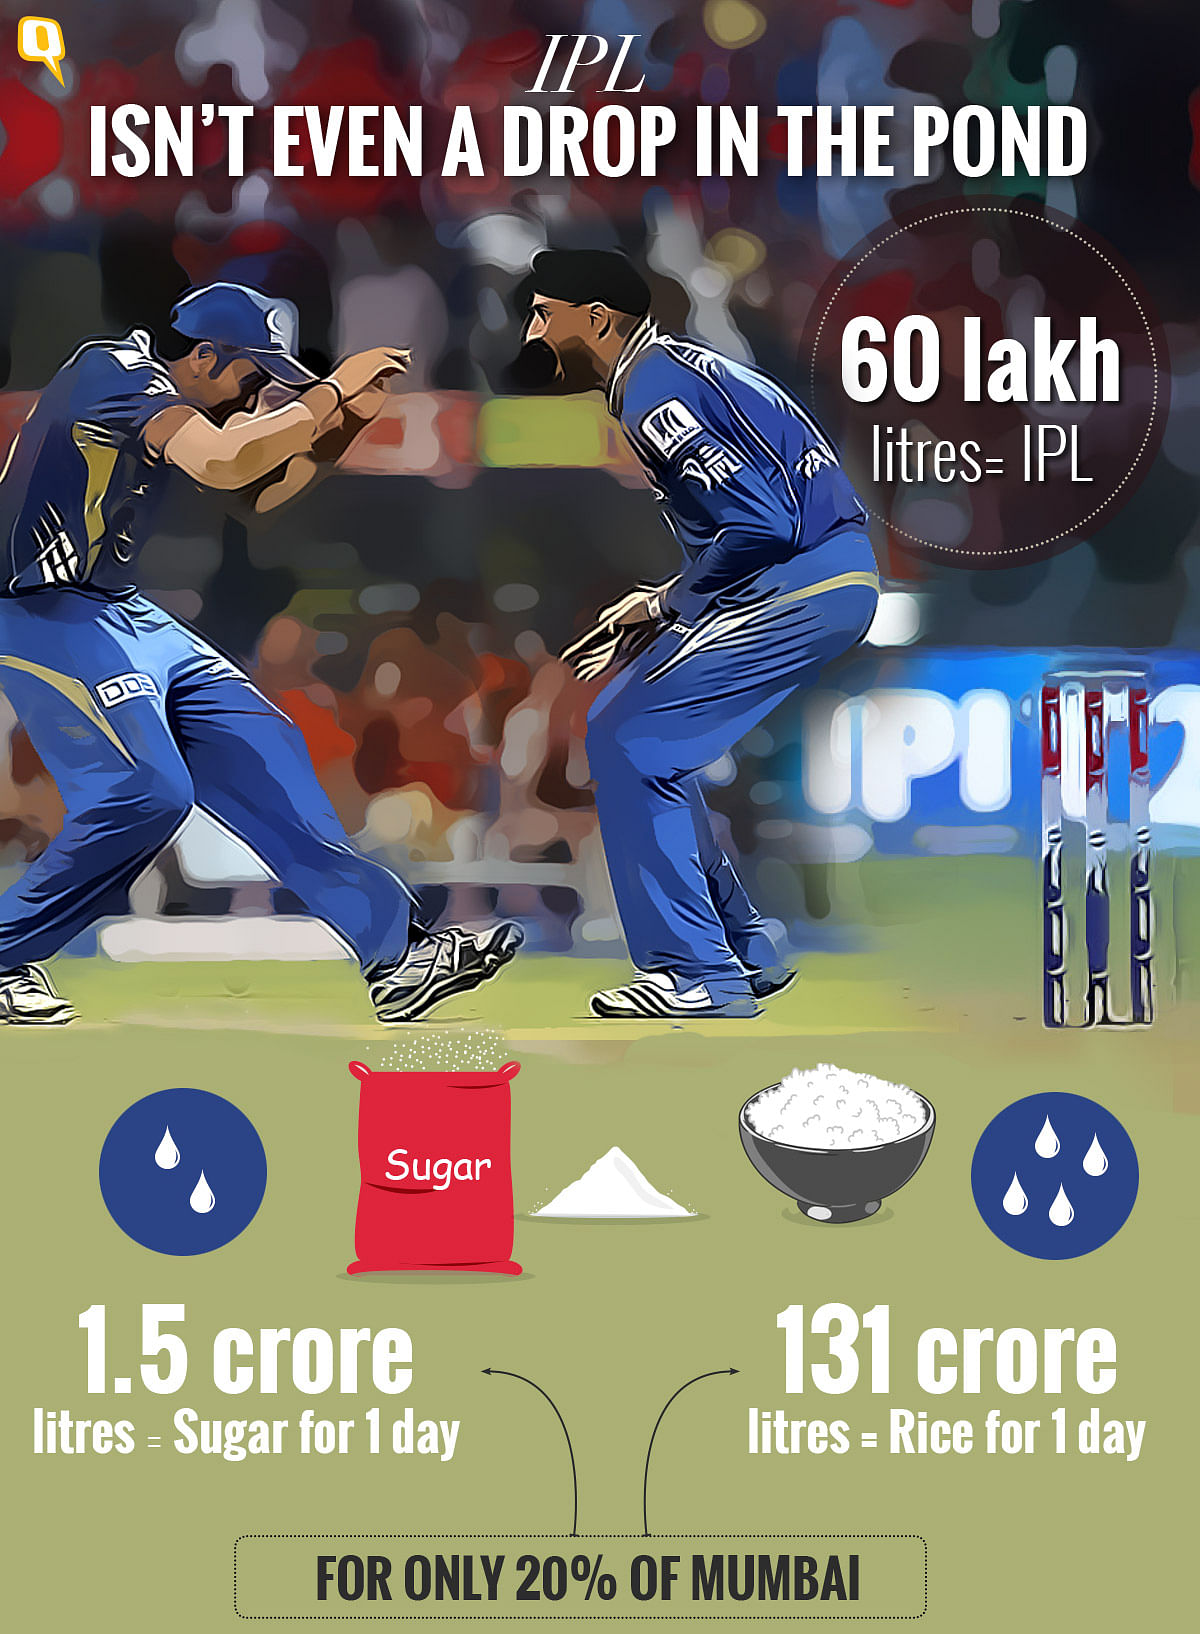 The amount of water that goes into a day's worth of sugar and rice is way higher than the water that will be used for IPL stadiums. (Infographic: Rahul Gupta)